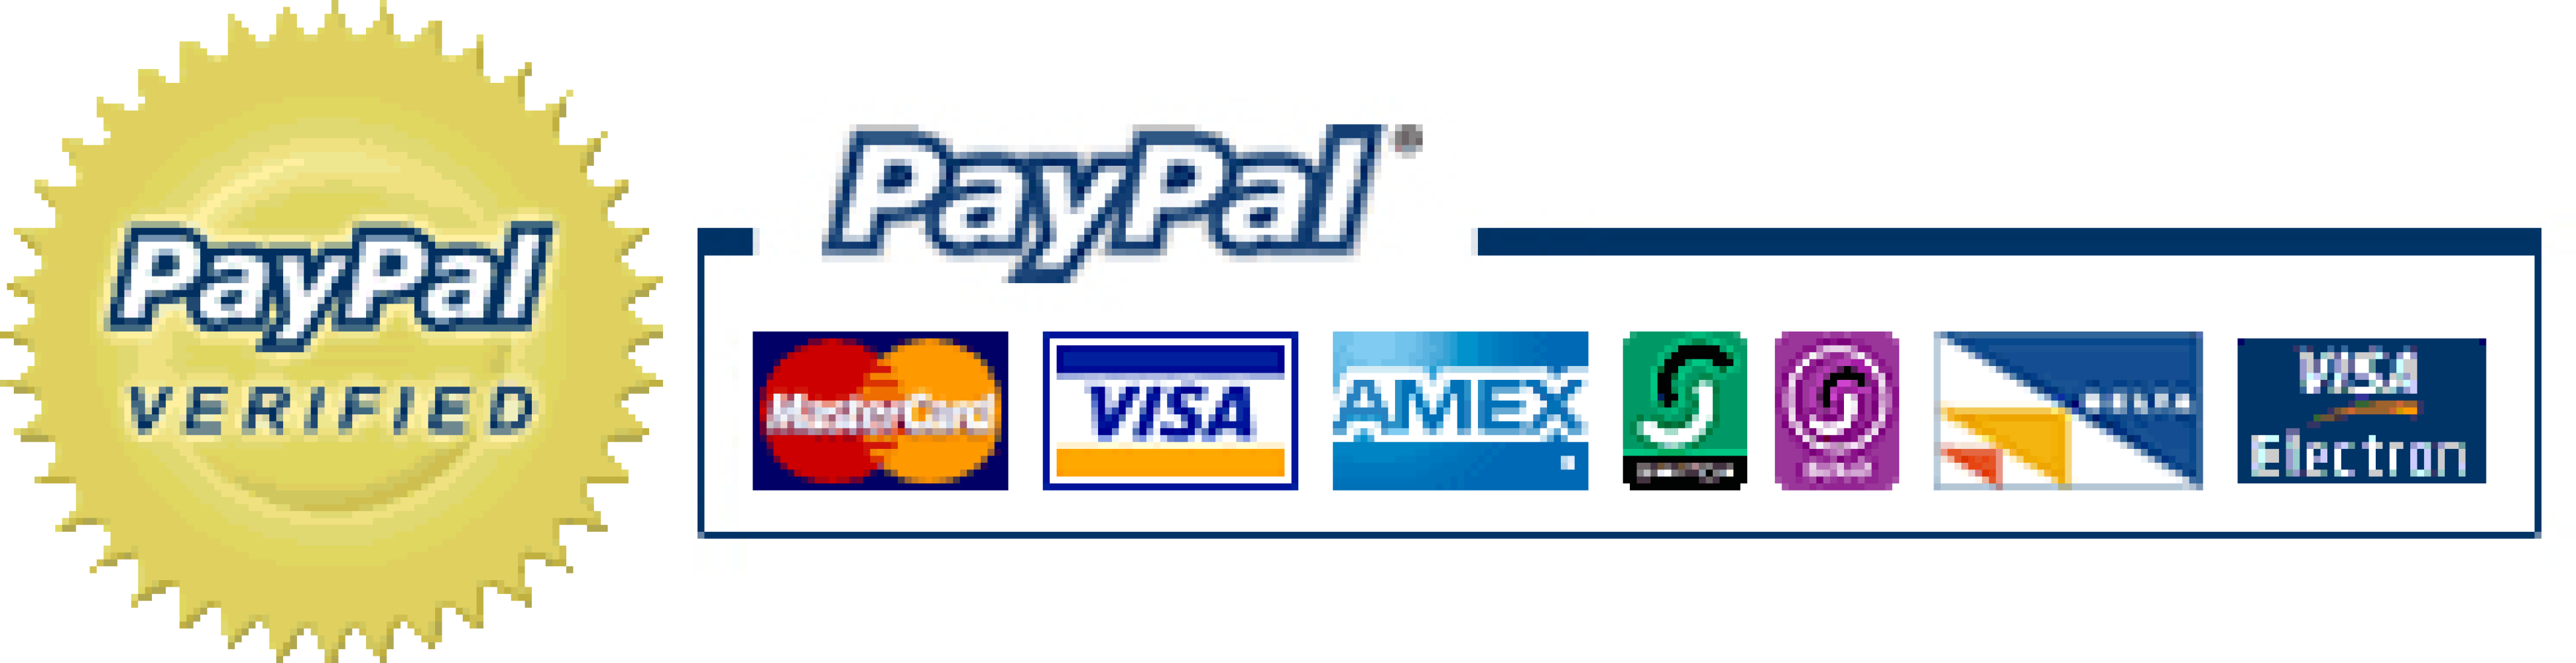 Paypal verified png. Payment success small business